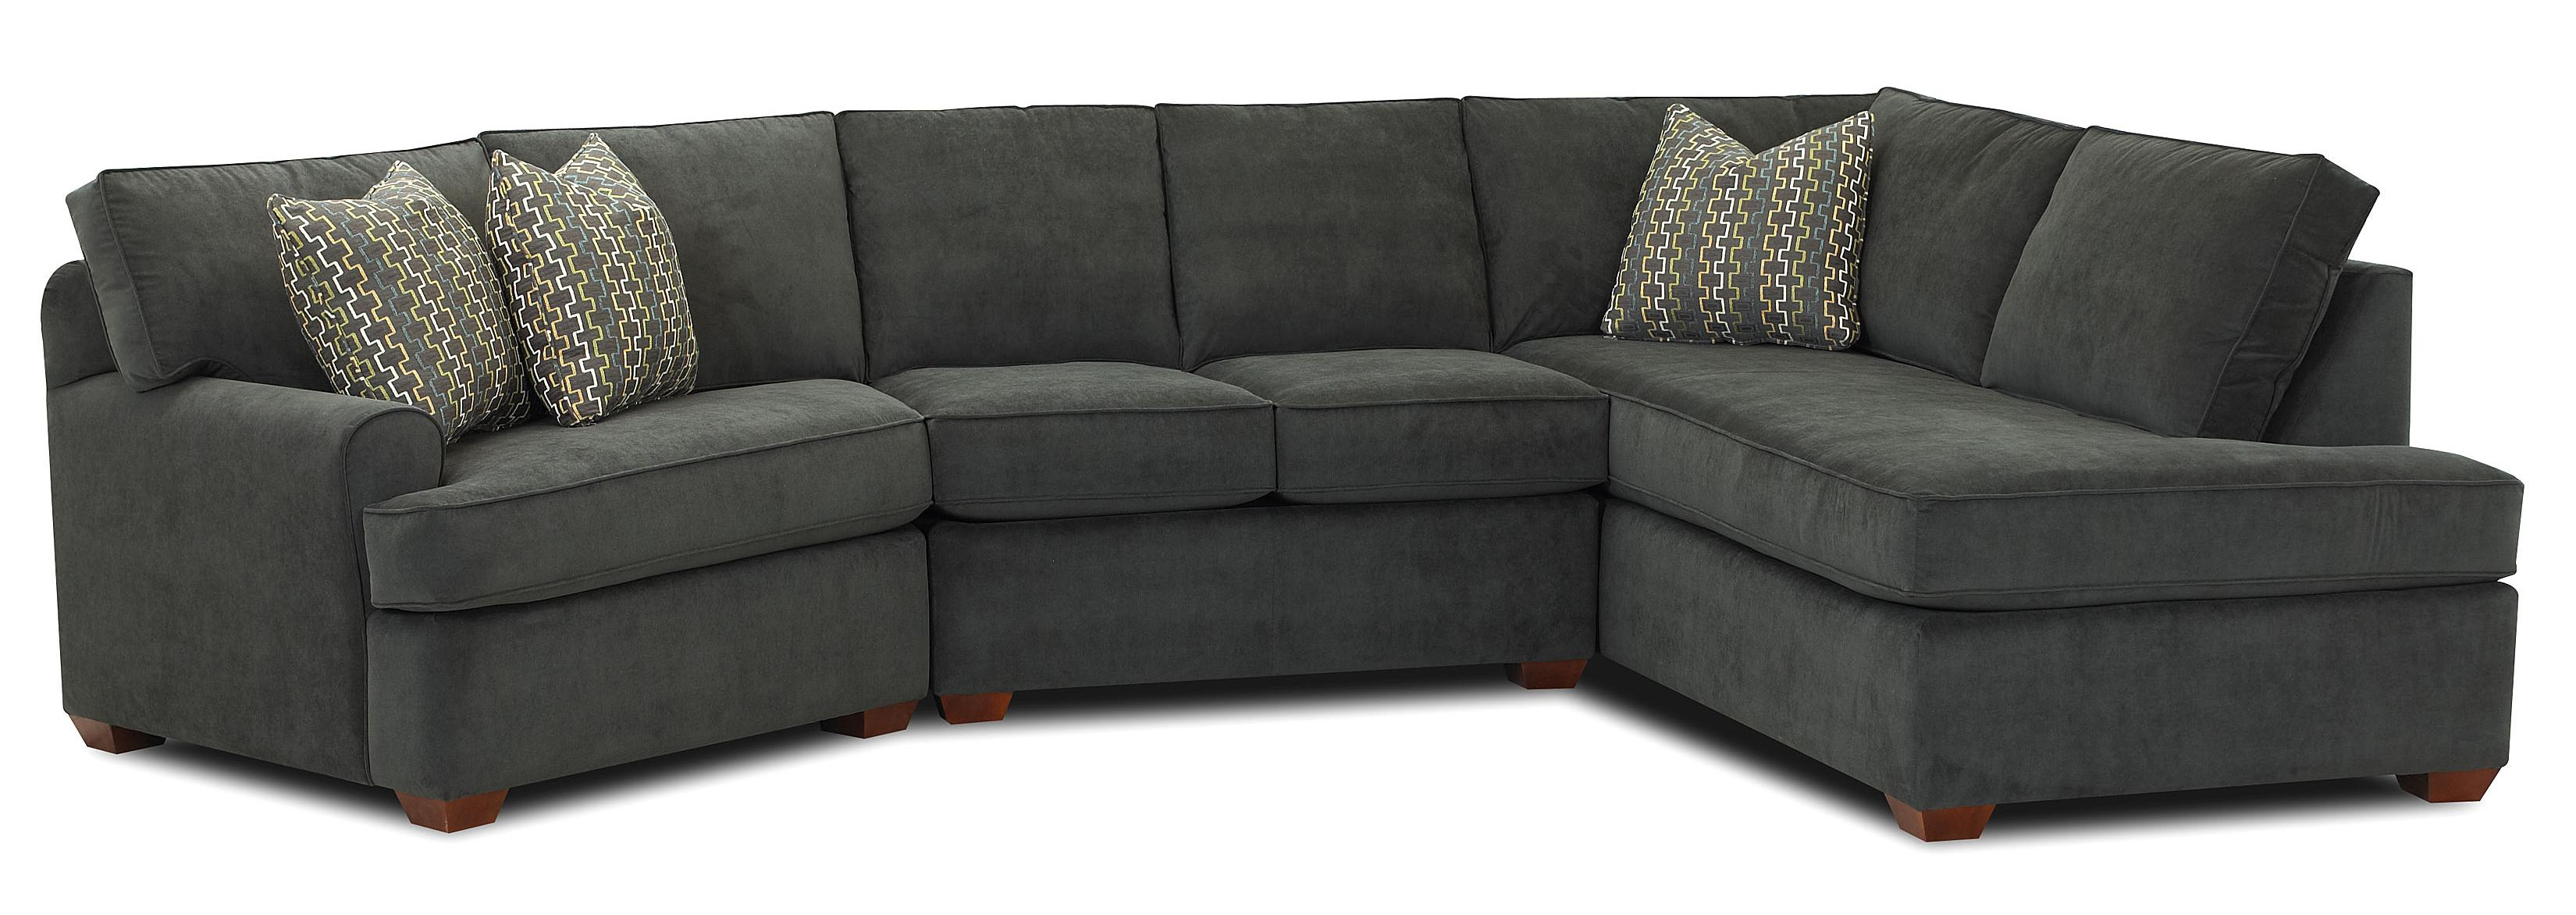 Sectional Sofa with Right-Facing Sofa Chaise  sc 1 st  Wolf Furniture : klaussner sectional sofa - Sectionals, Sofas & Couches